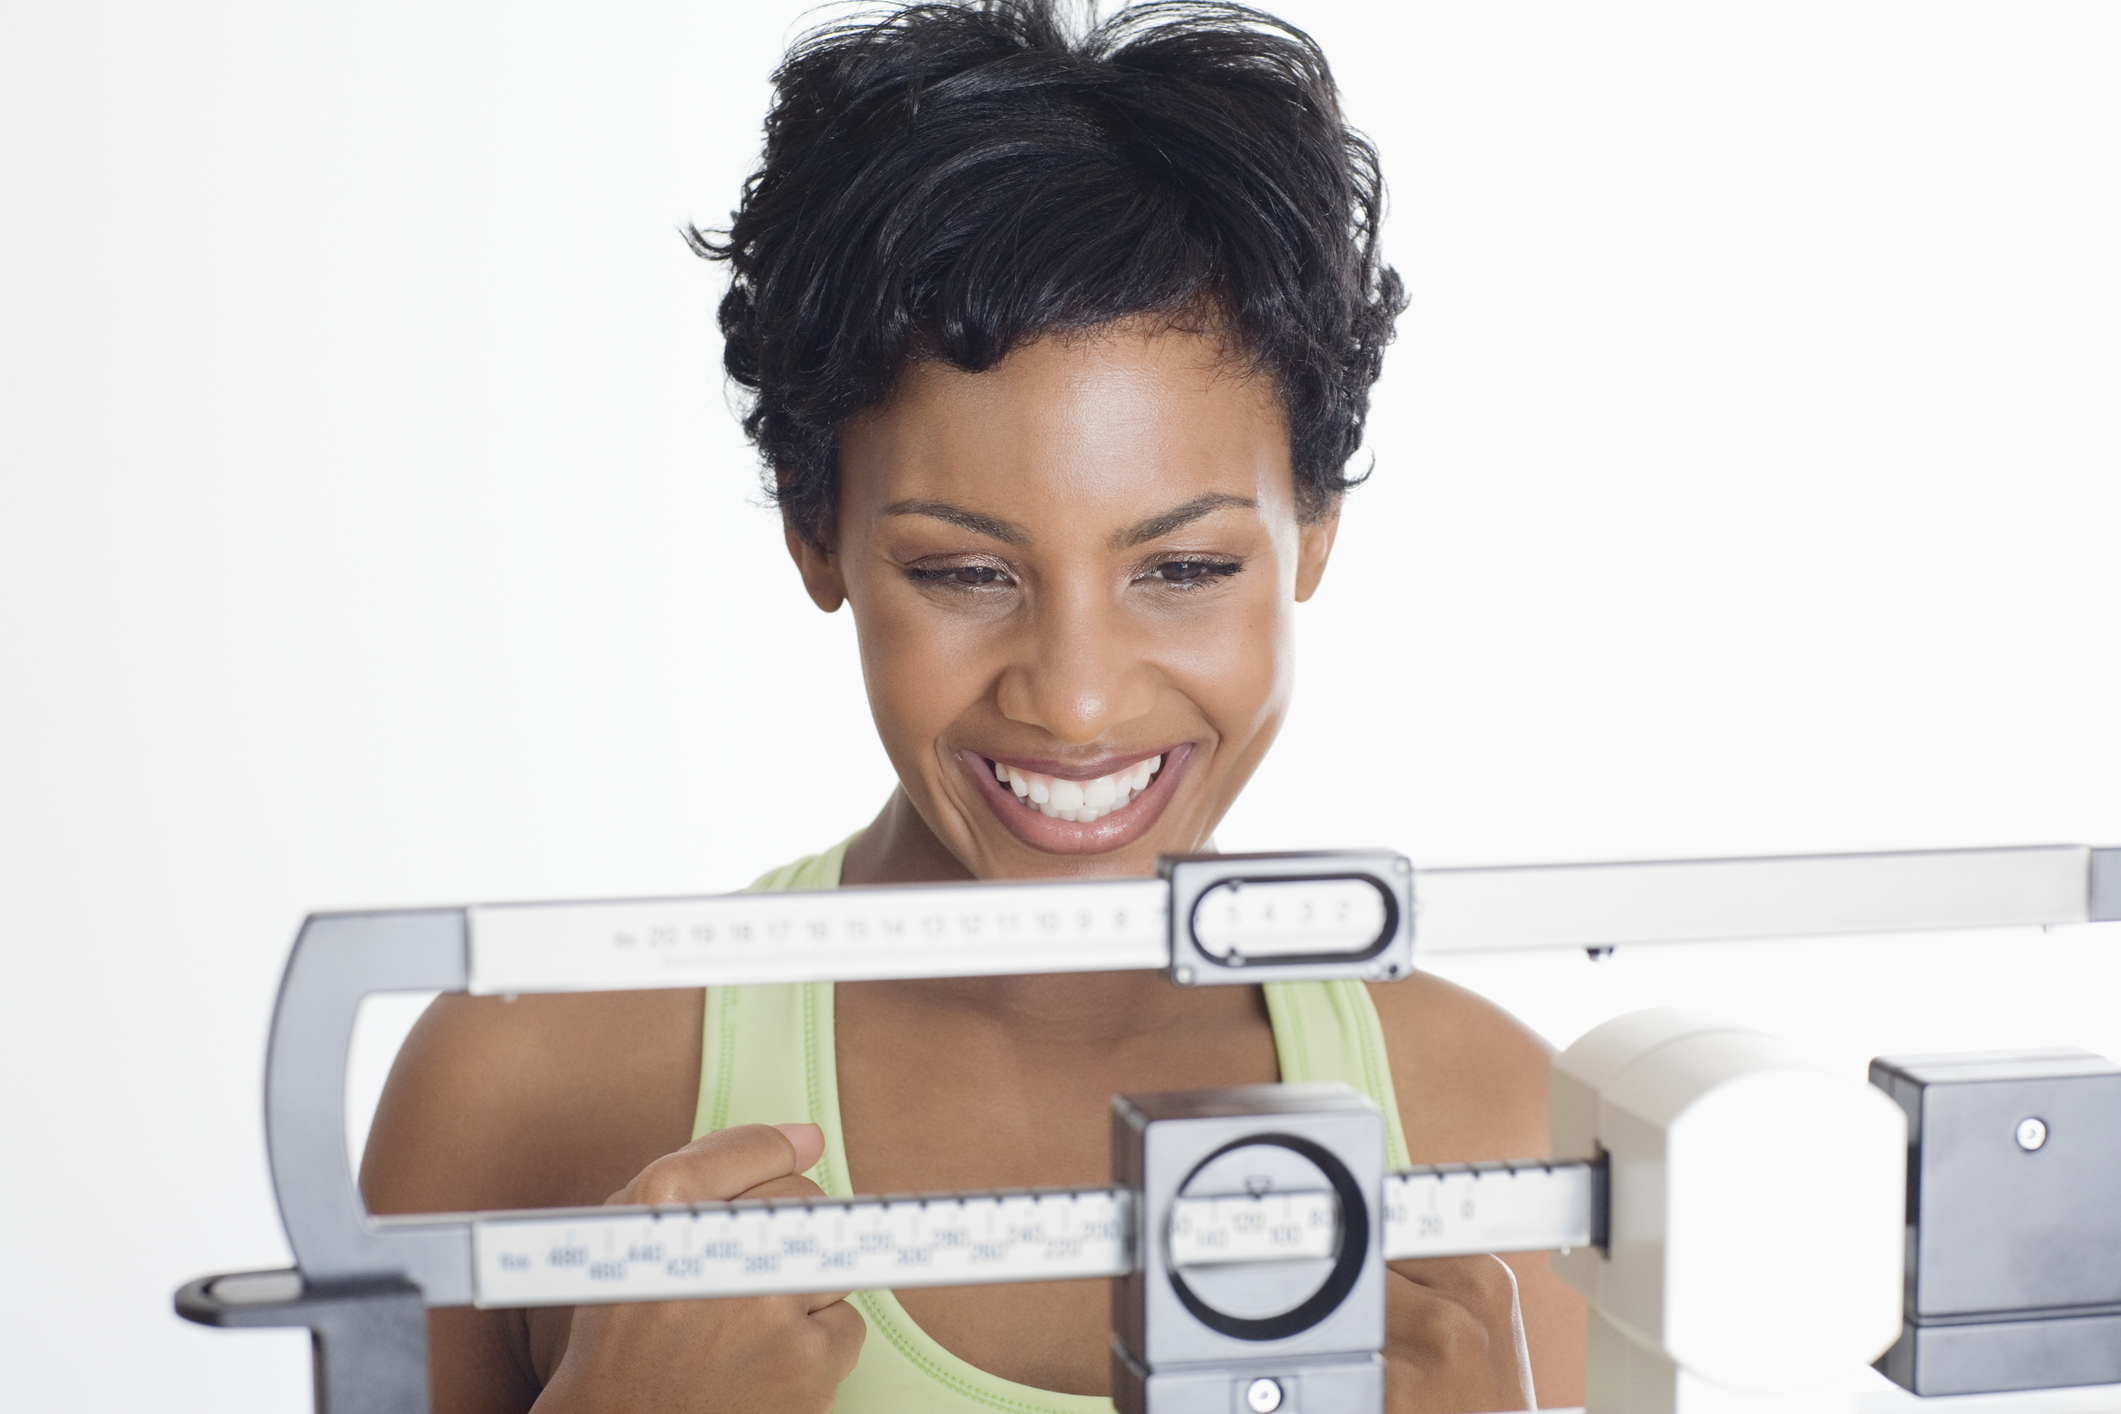 Close up of an African American Woman on a scale and looking happy.